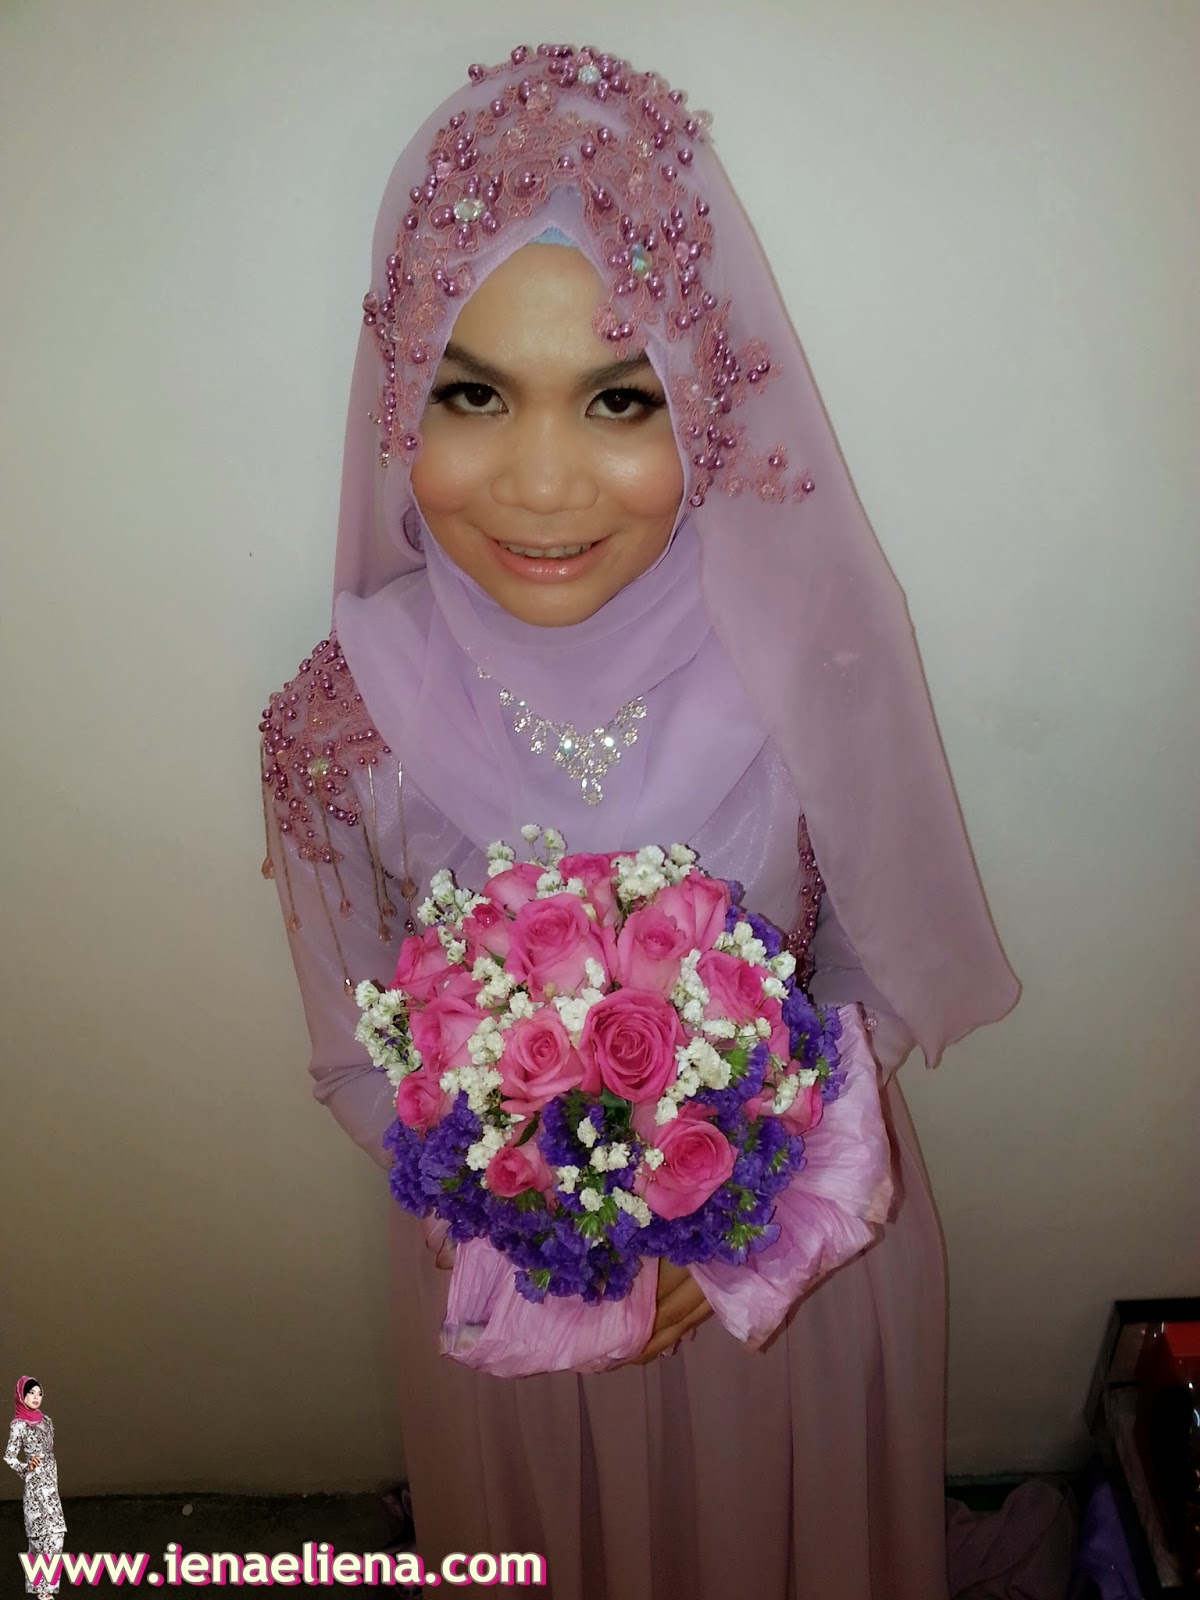 HAND BOUQUET FRESH FLOWER DECO BY IENA ELIENA